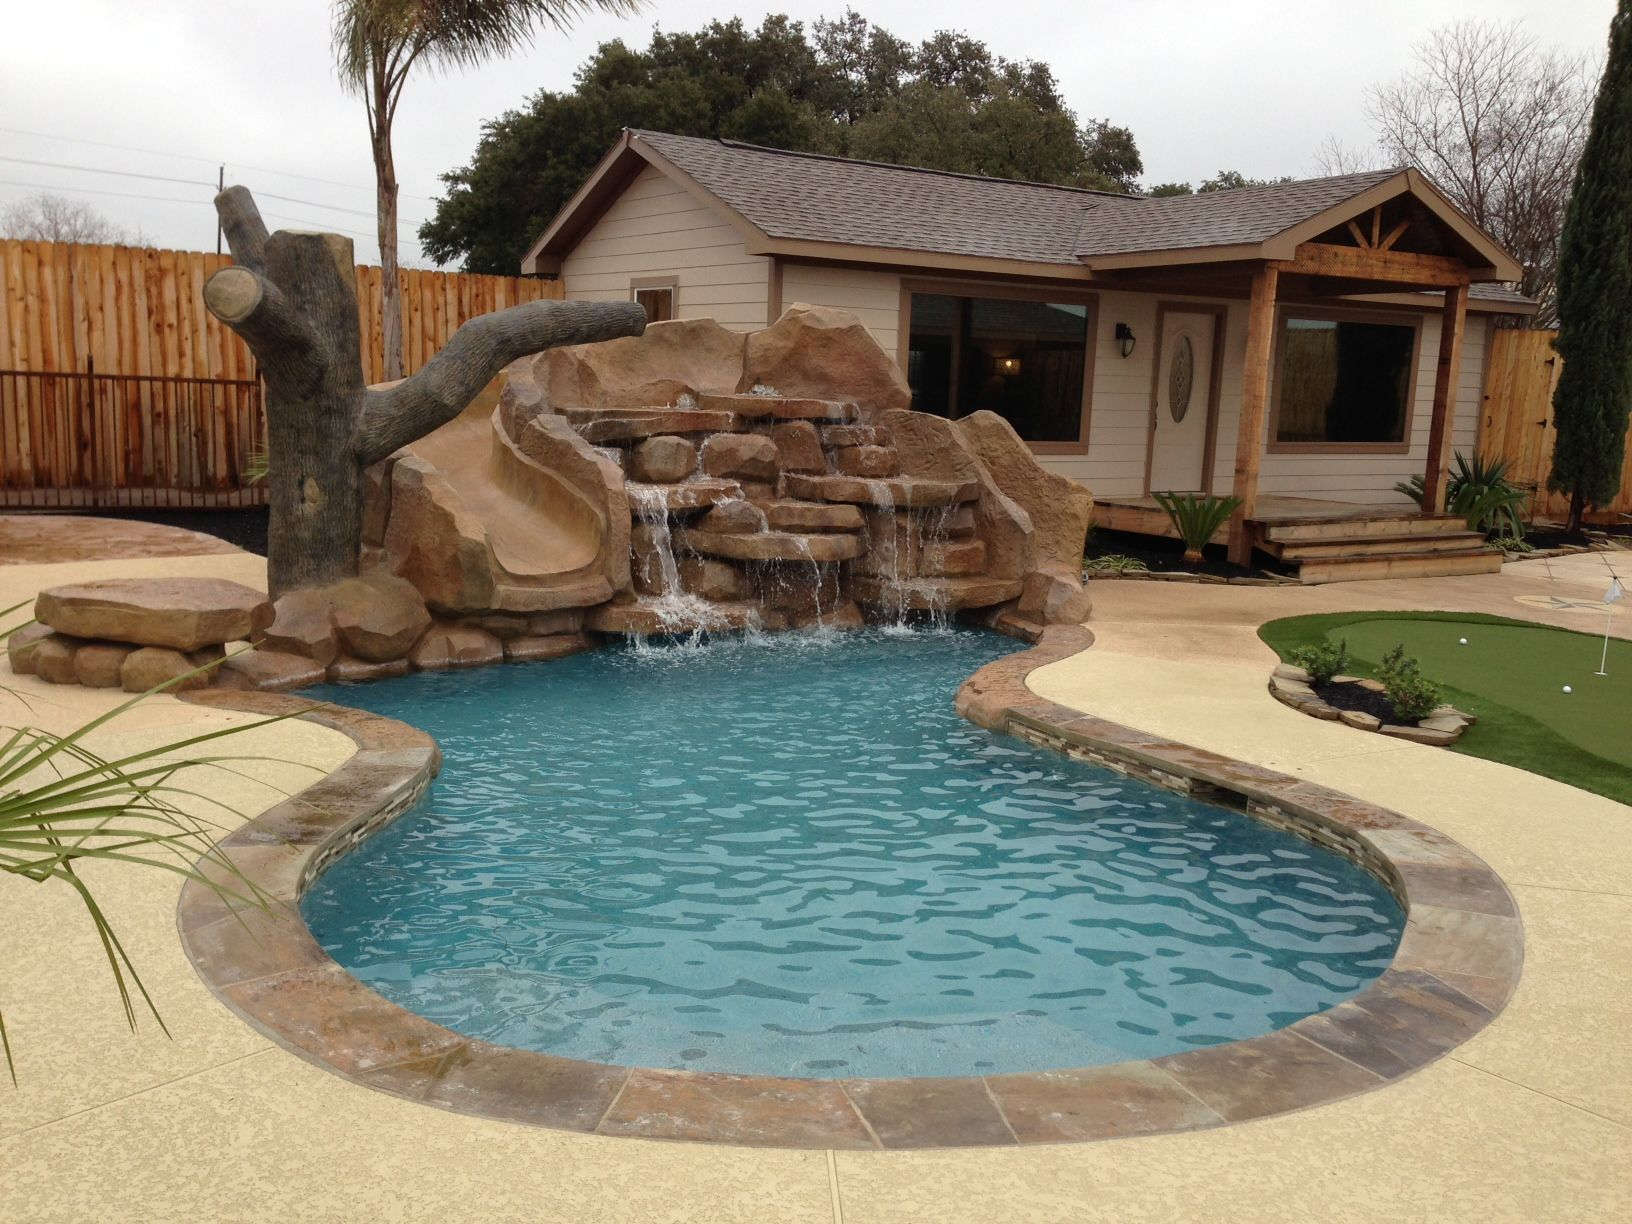 Small Pool Design Ideas lovely rustic small pool design ideas with sophisticated bowl fountain and upper sun protector Pool Designs For Small Backyards 18 Small But Beautiful Swimming Pool Design Ideas Smallbackyardpools Small Swimming